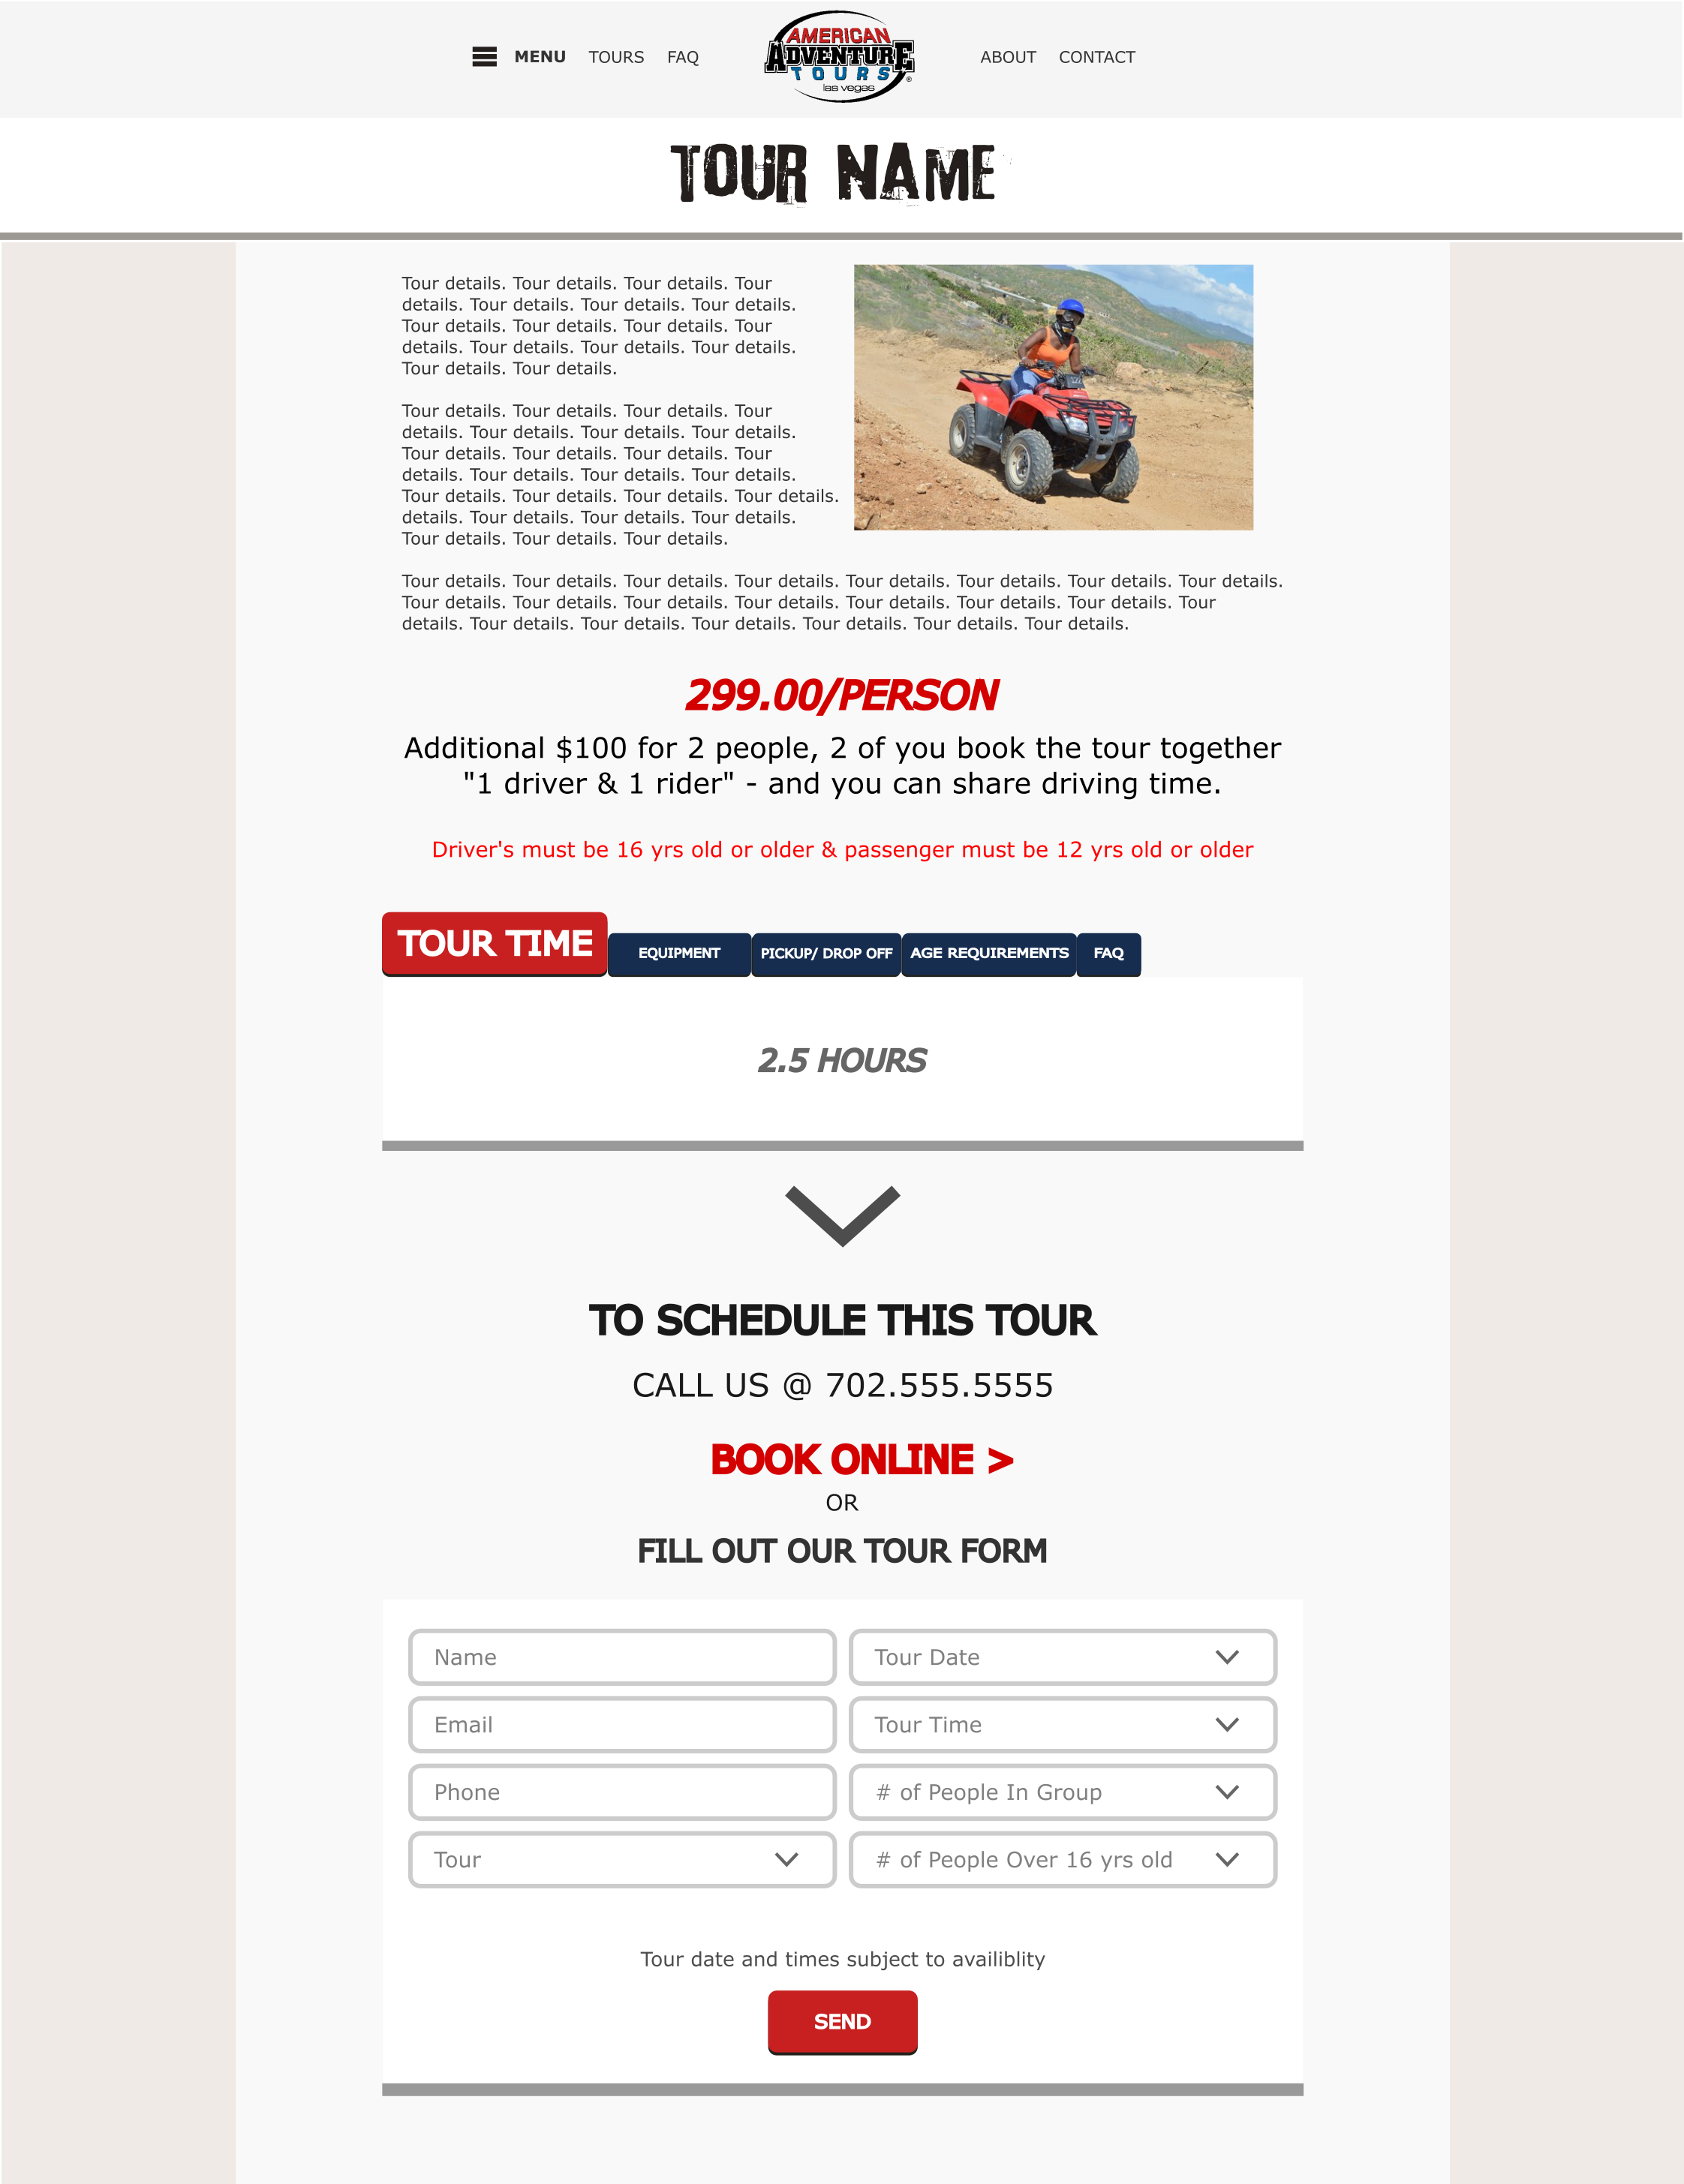 American Adventure Tours - tour page mockup1